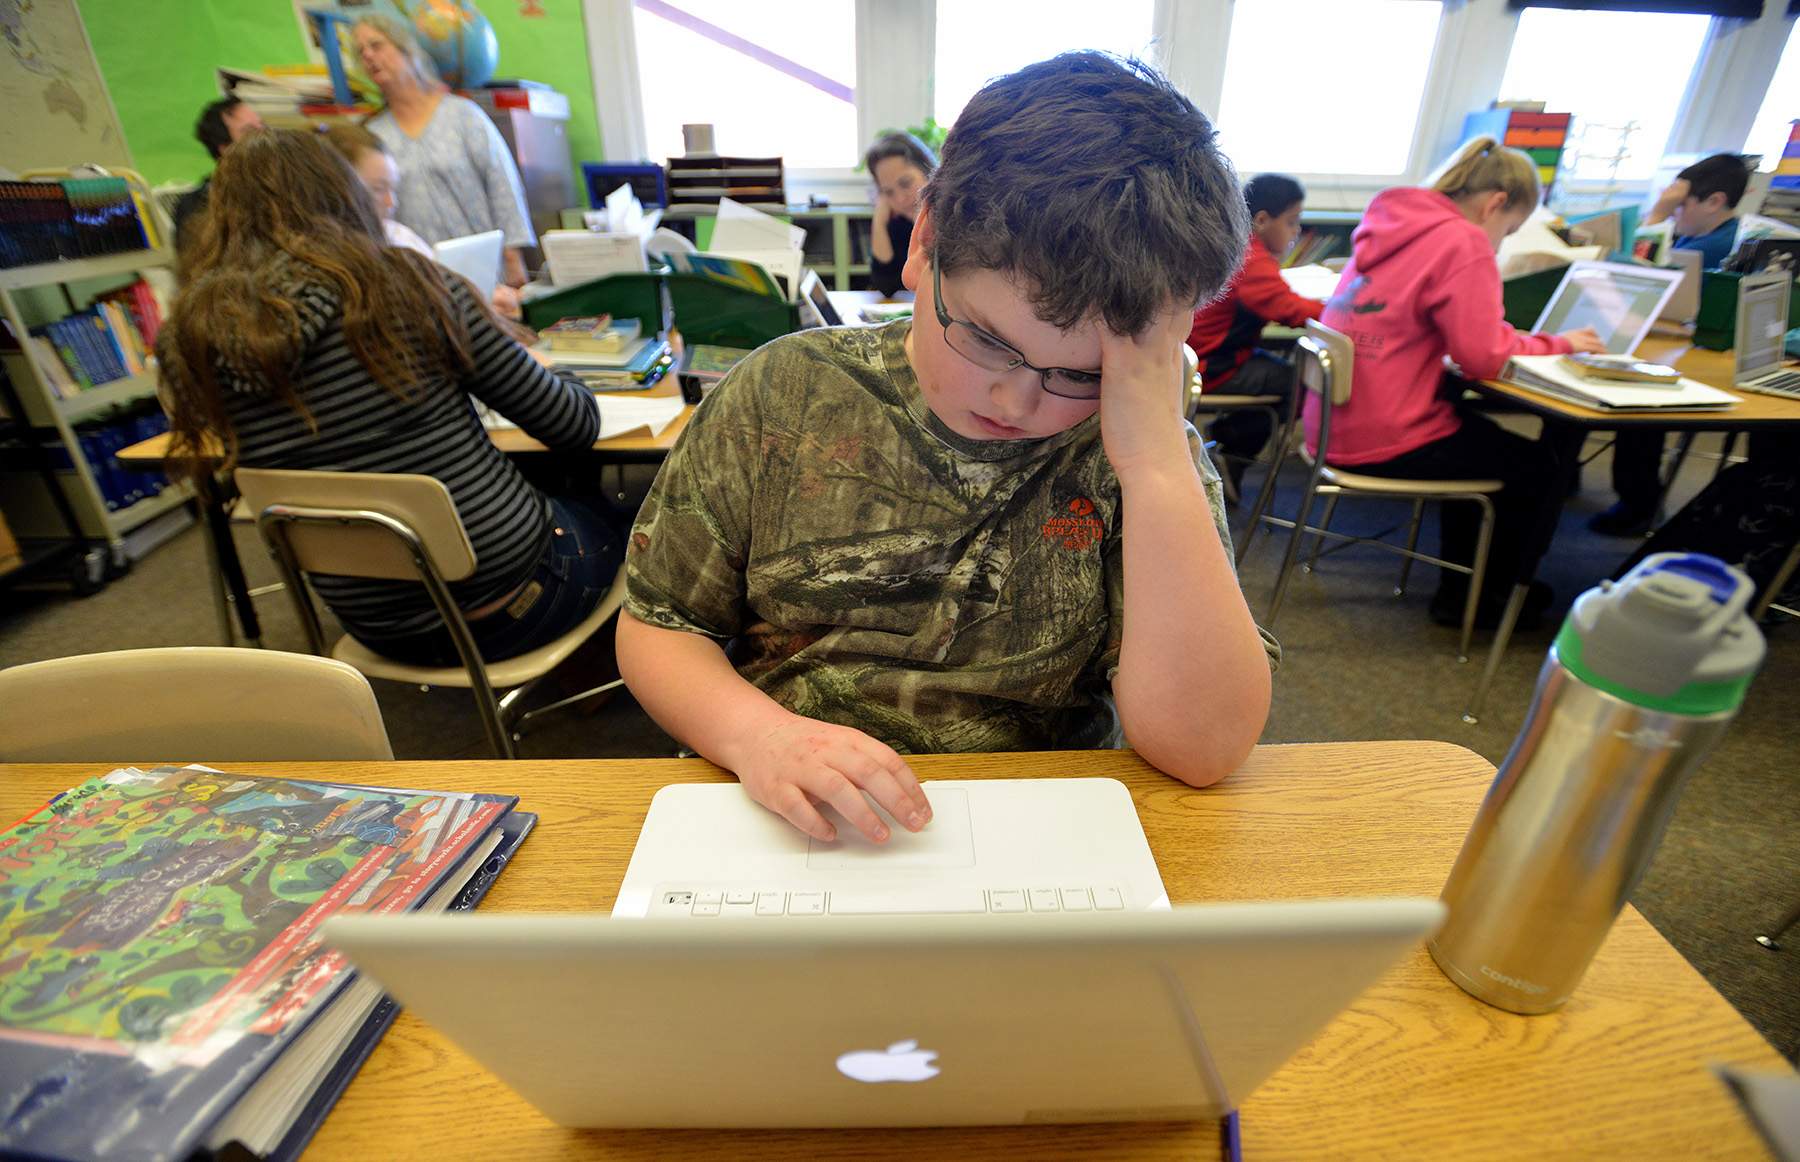 Myron Wotton, 11, Works on his arithmetic